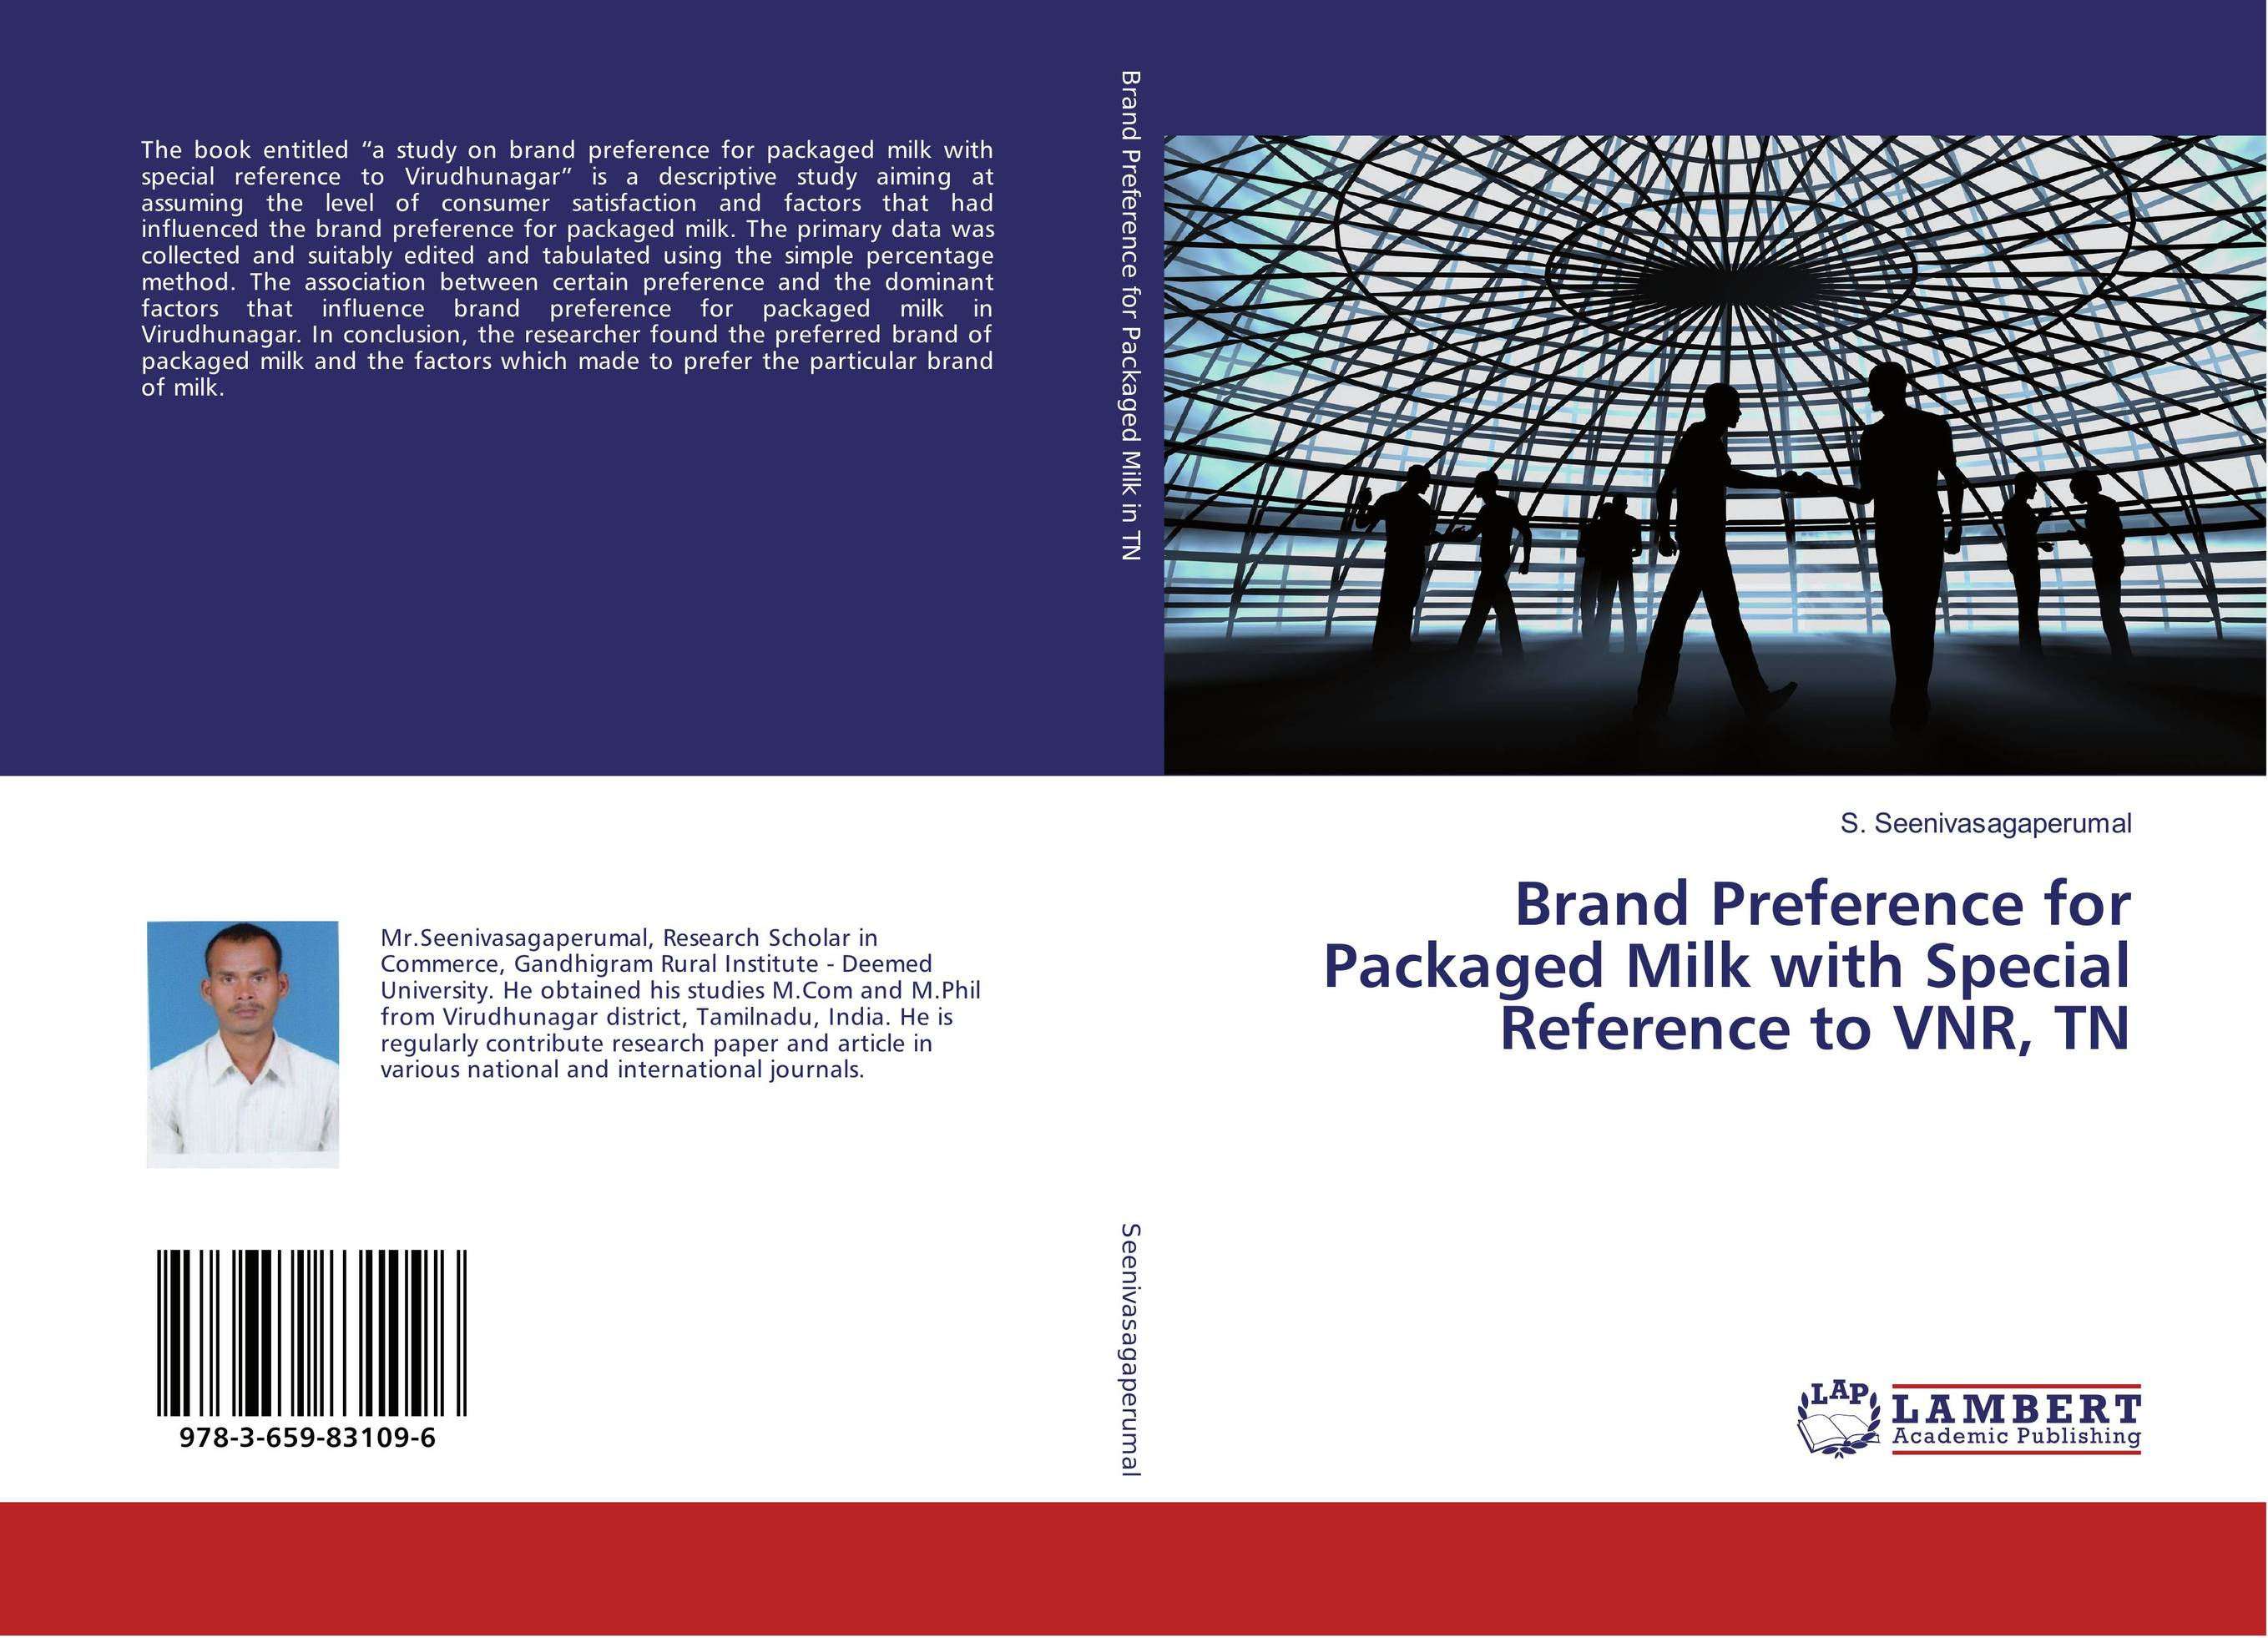 Brand Preference for Packaged Milk with Special Reference to VNR, TN the effect of advertisement on consumer behavior and brand preference